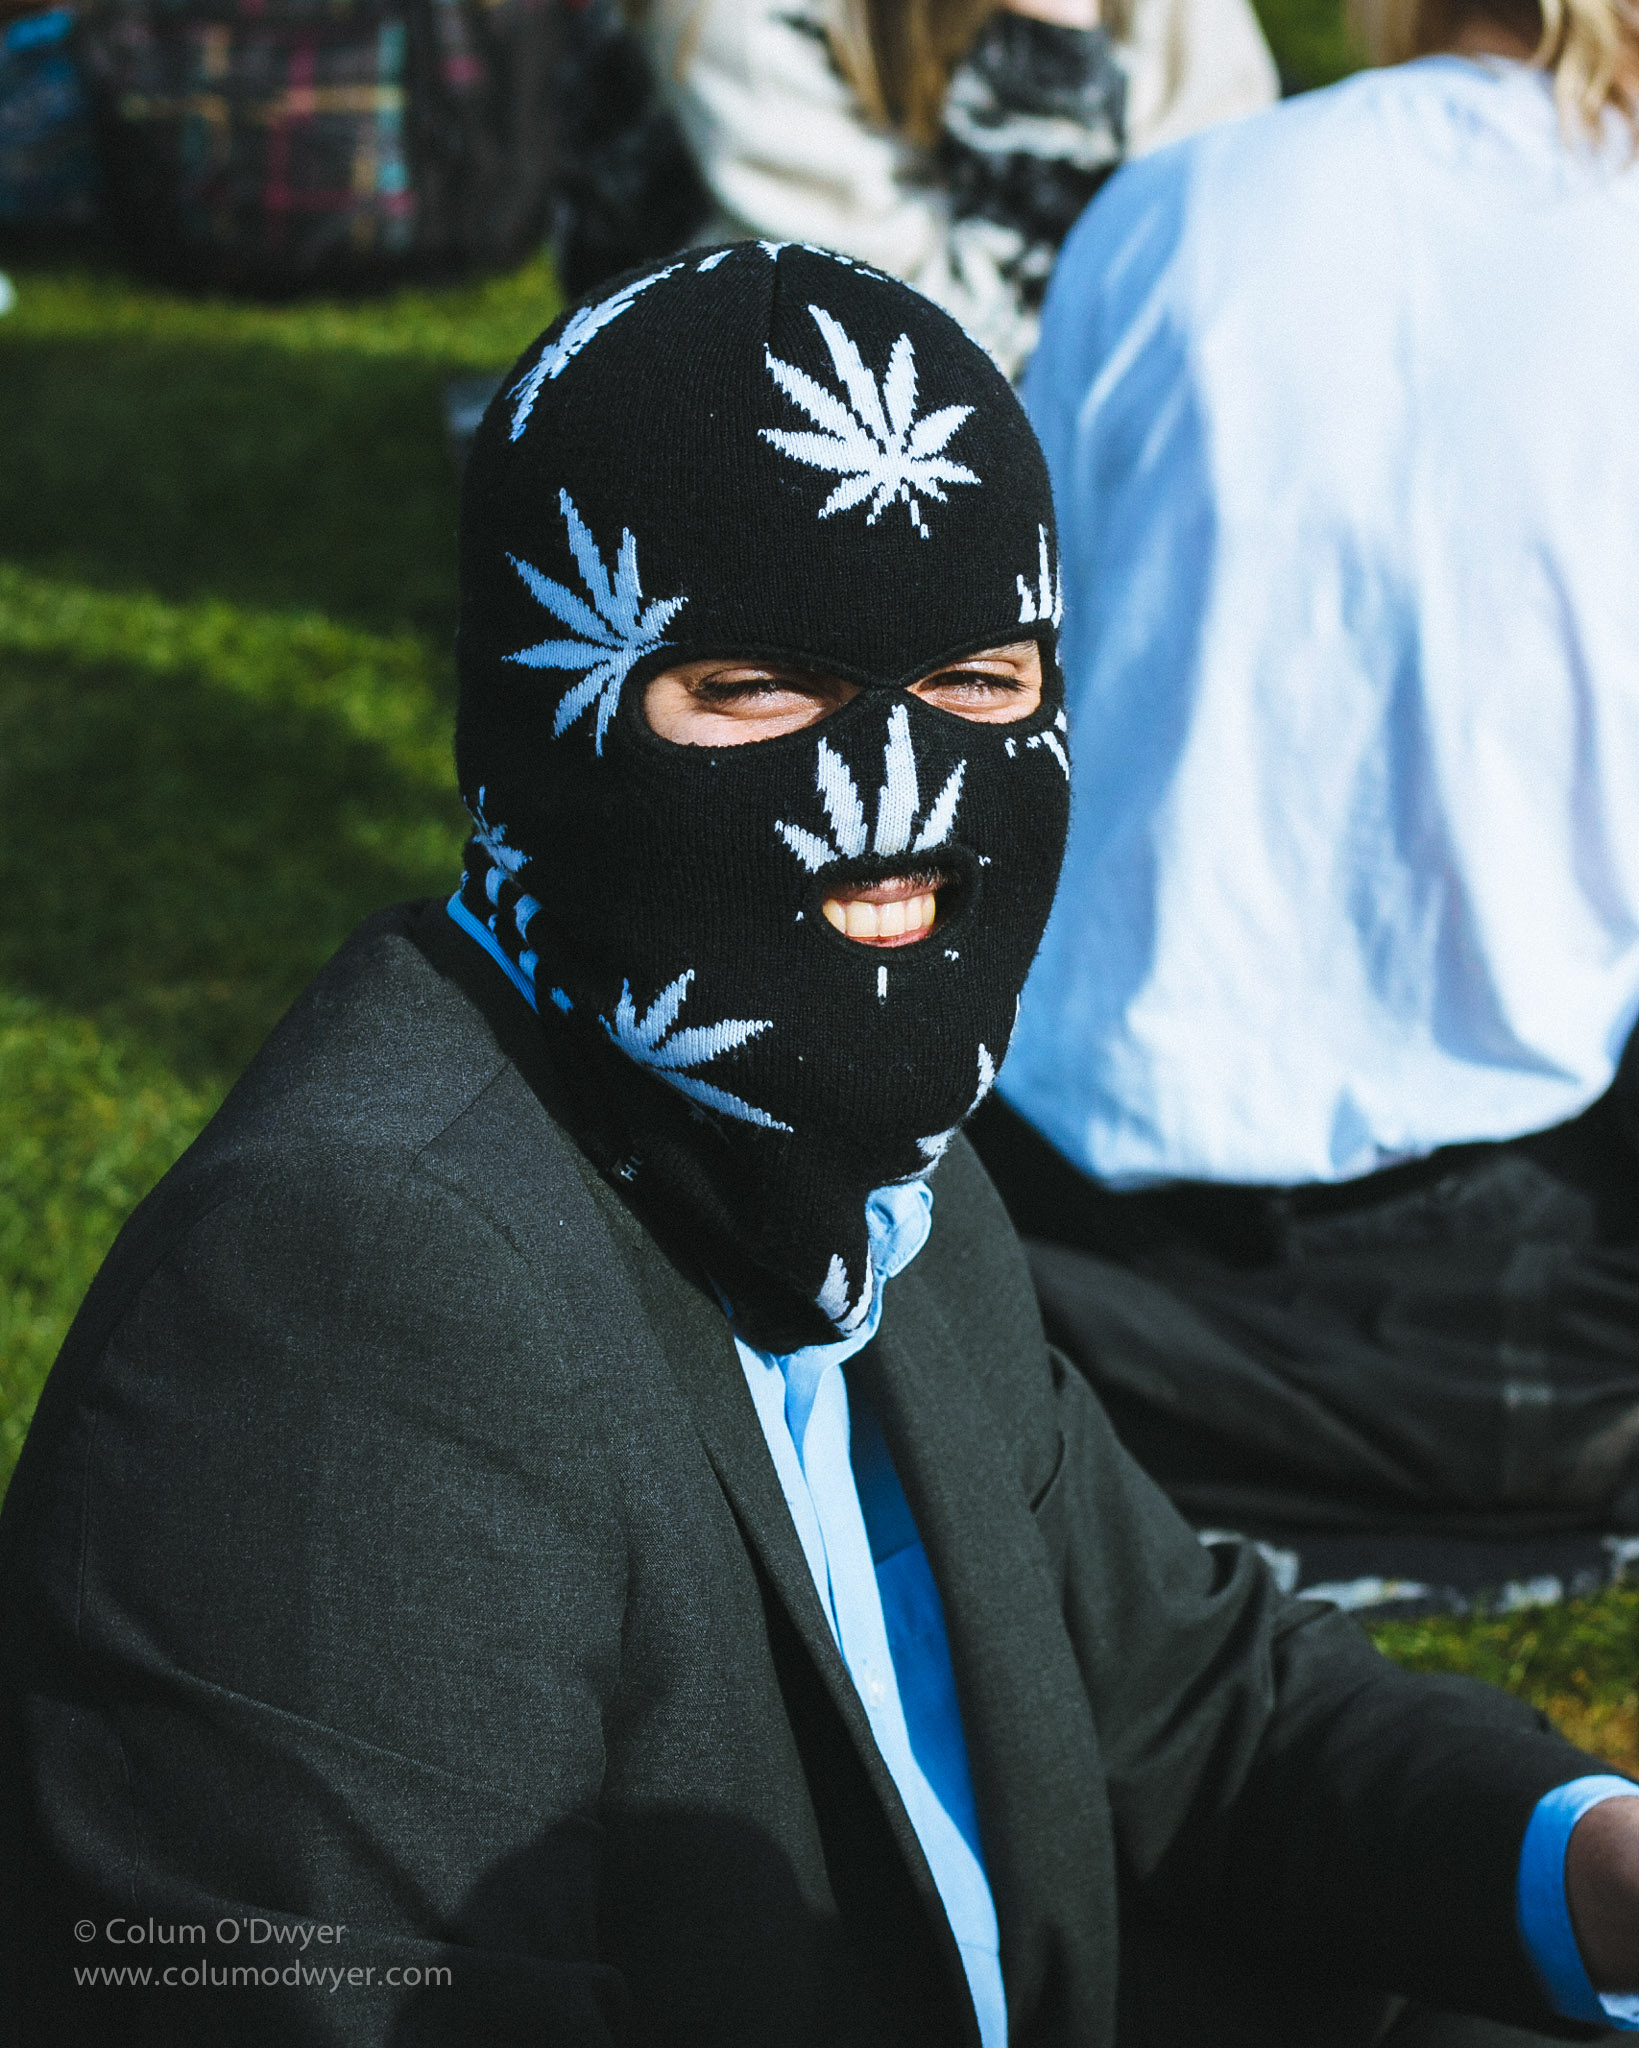 420 Hyde Park London - Apr 2017 - IMG_1636.jpg